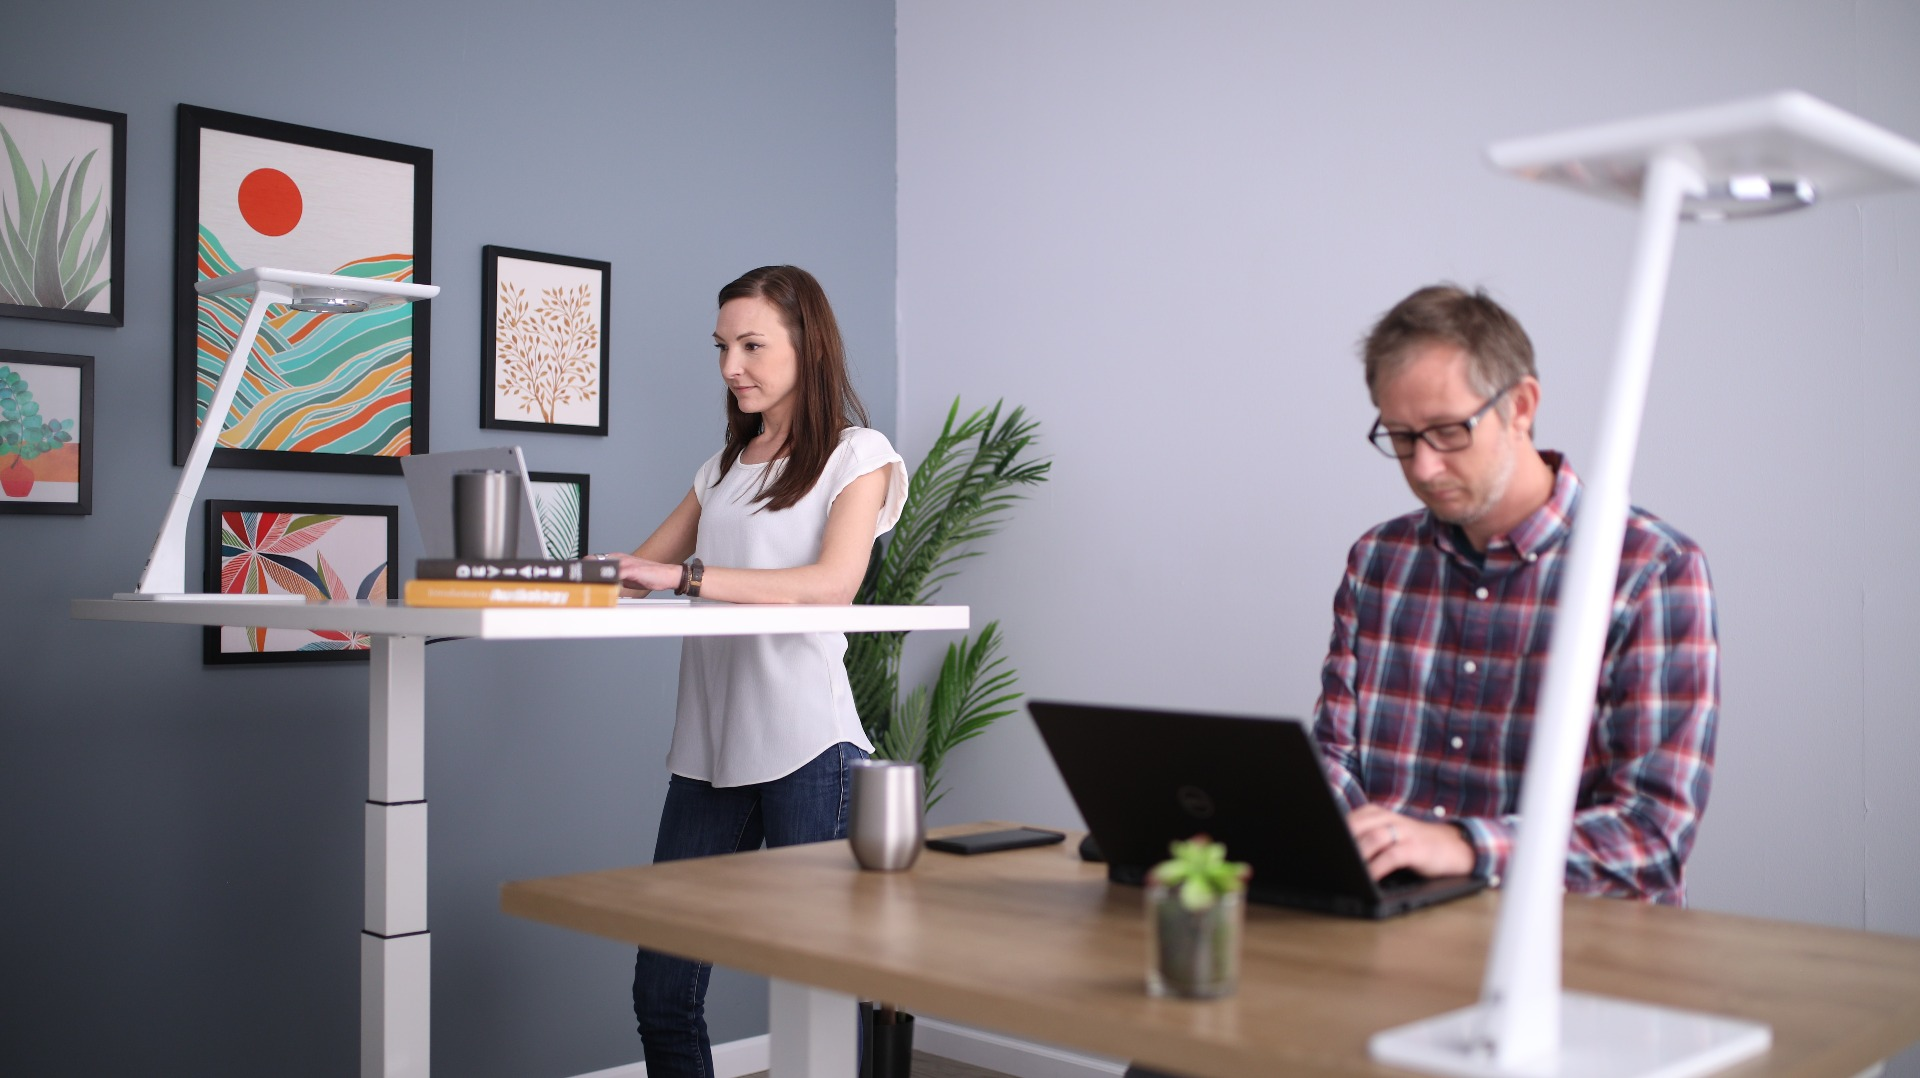 One person sitting, one standing at desks